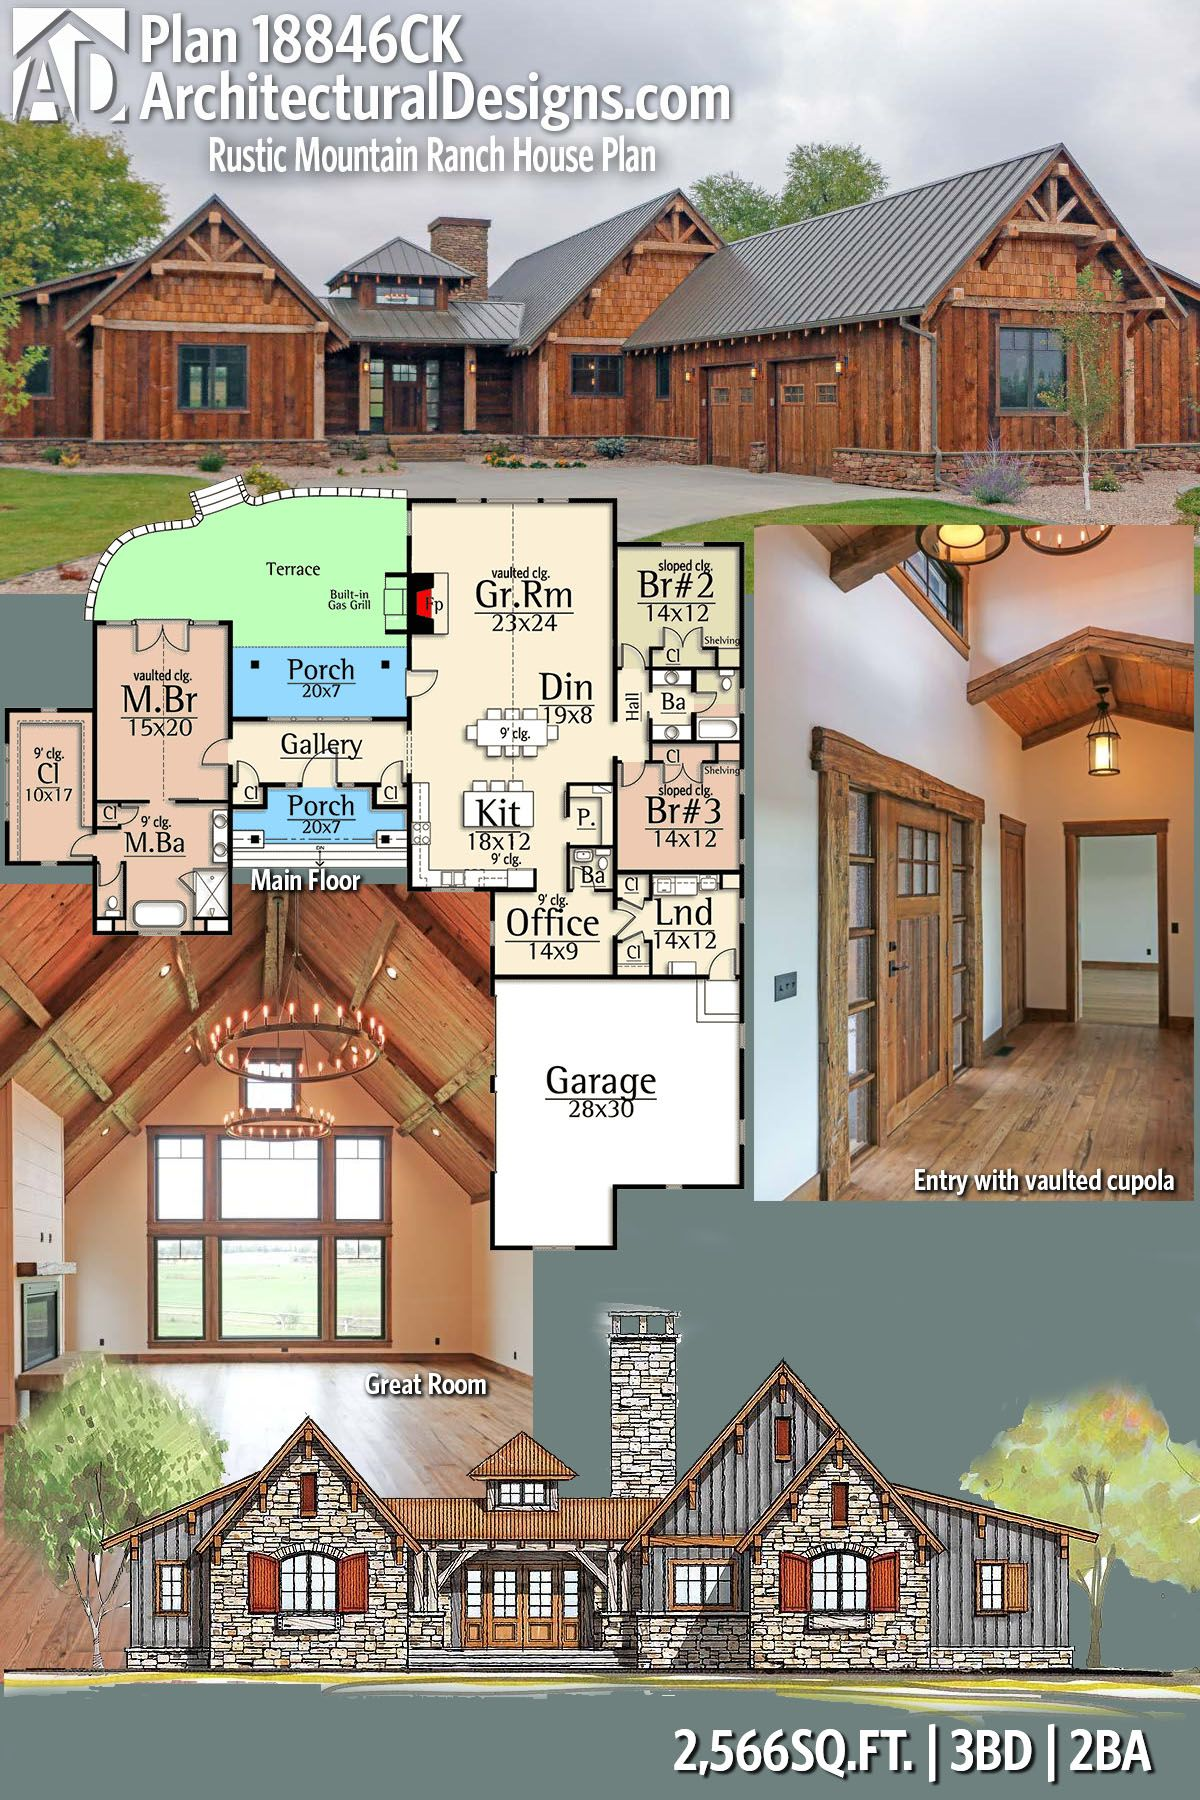 Plan 18846ck Rustic Mountain Ranch House Plan Mountain House Plans Mountain Ranch House Plans Ranch House Plans